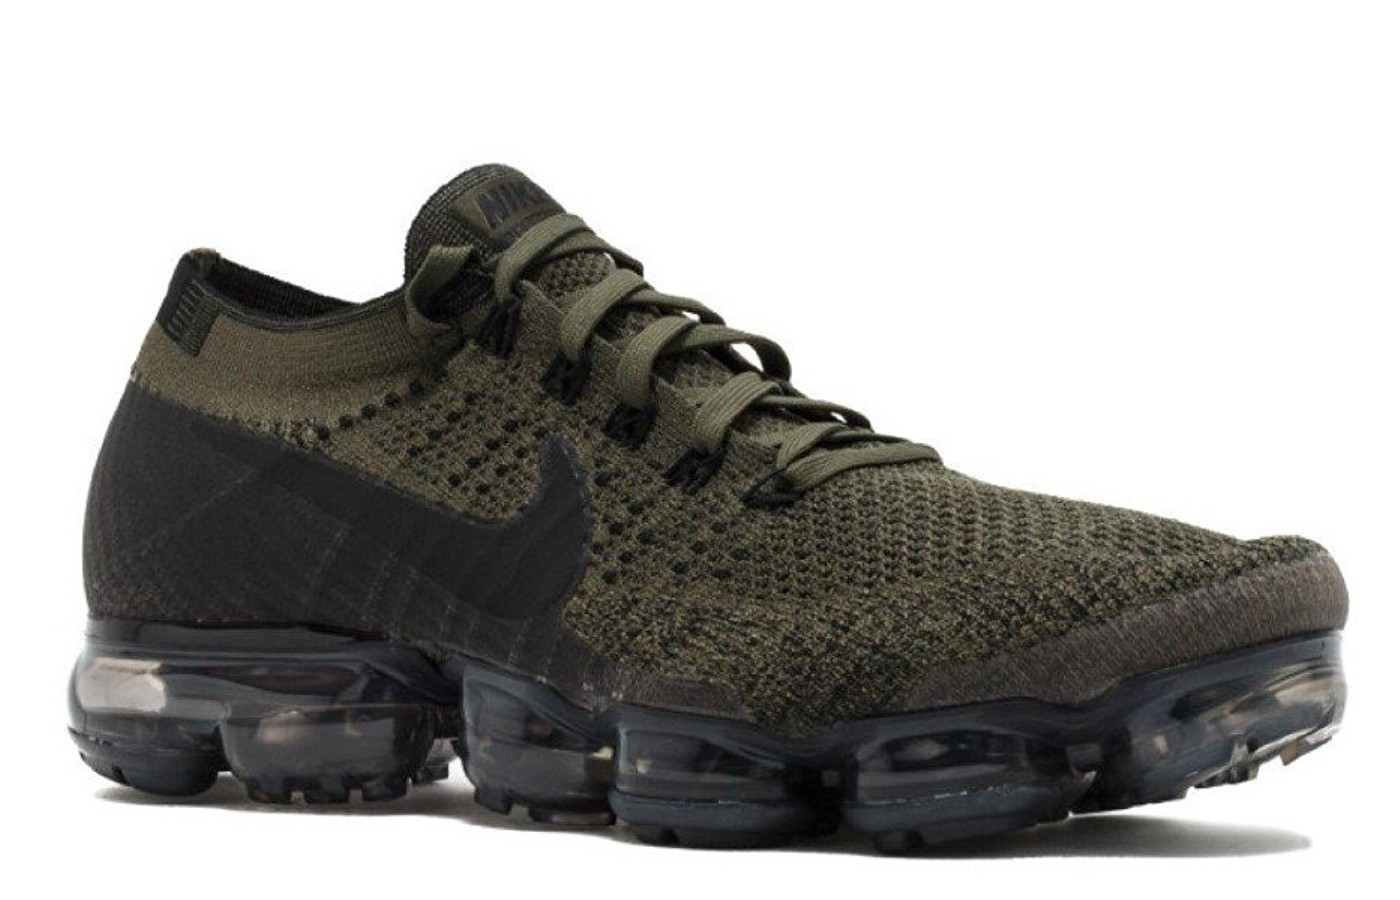 05a525bf5f Nike Air Vapormax Flyknit Reviewed for Performance in 2019 | TheGearHunt